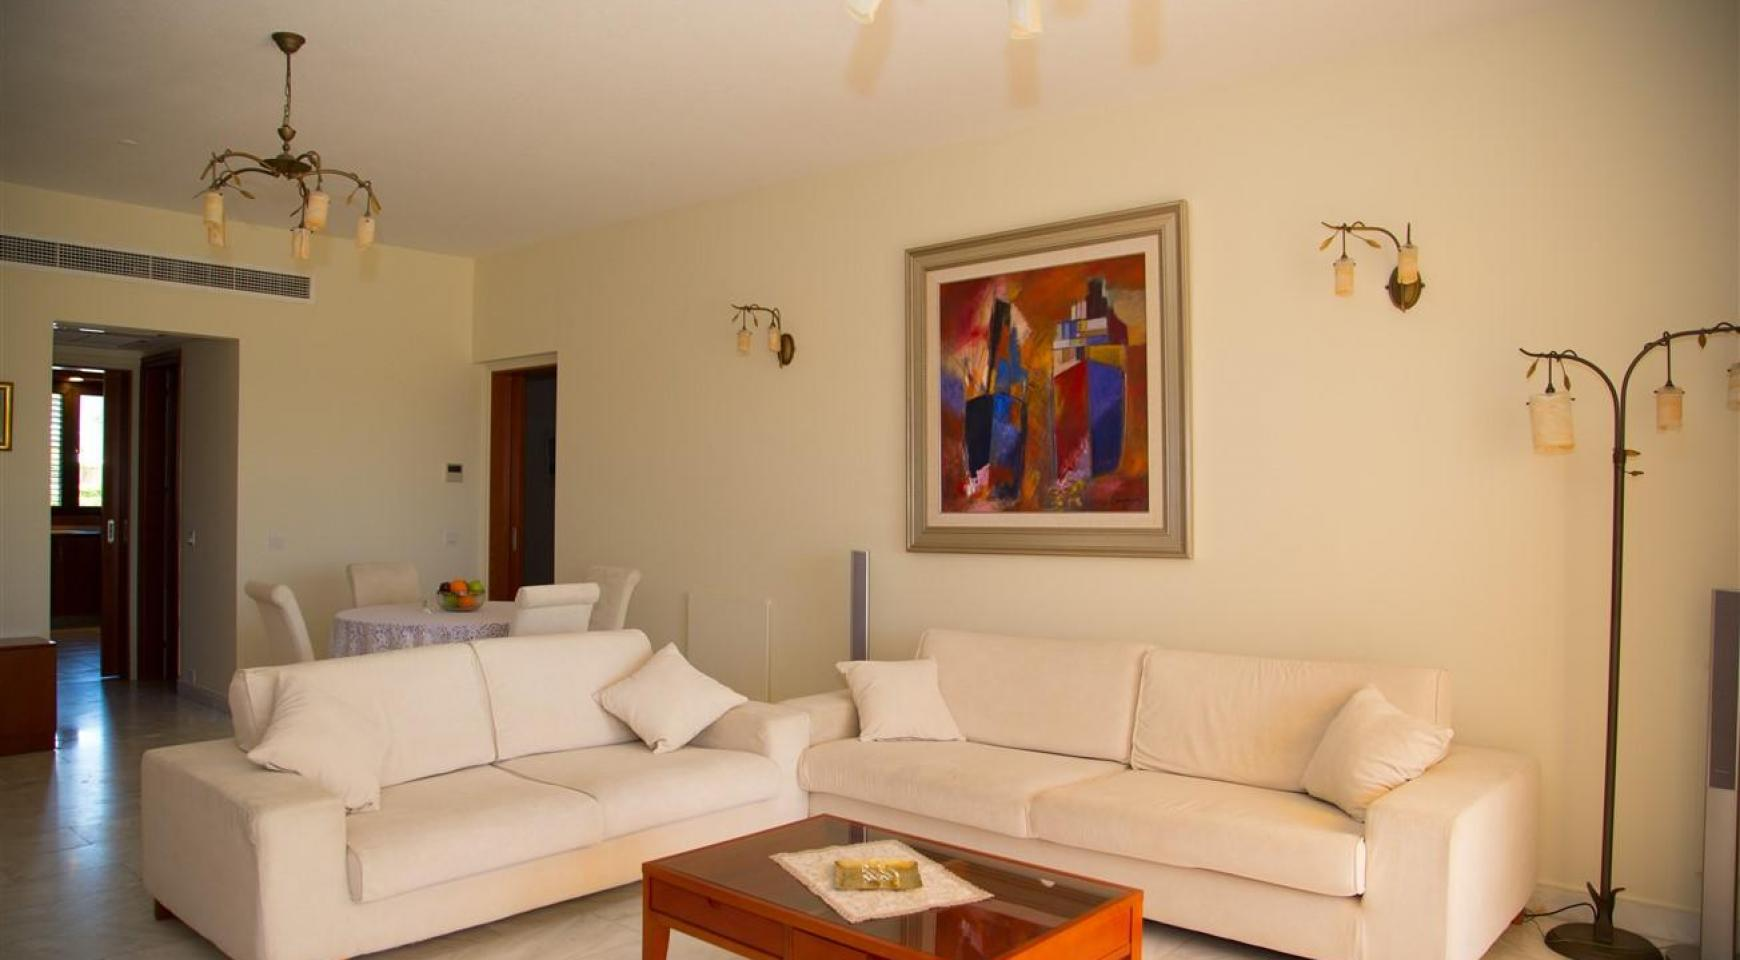 Cozy and Spacious 3 Bedroom Apartment Thera 102 by the Sea - 38